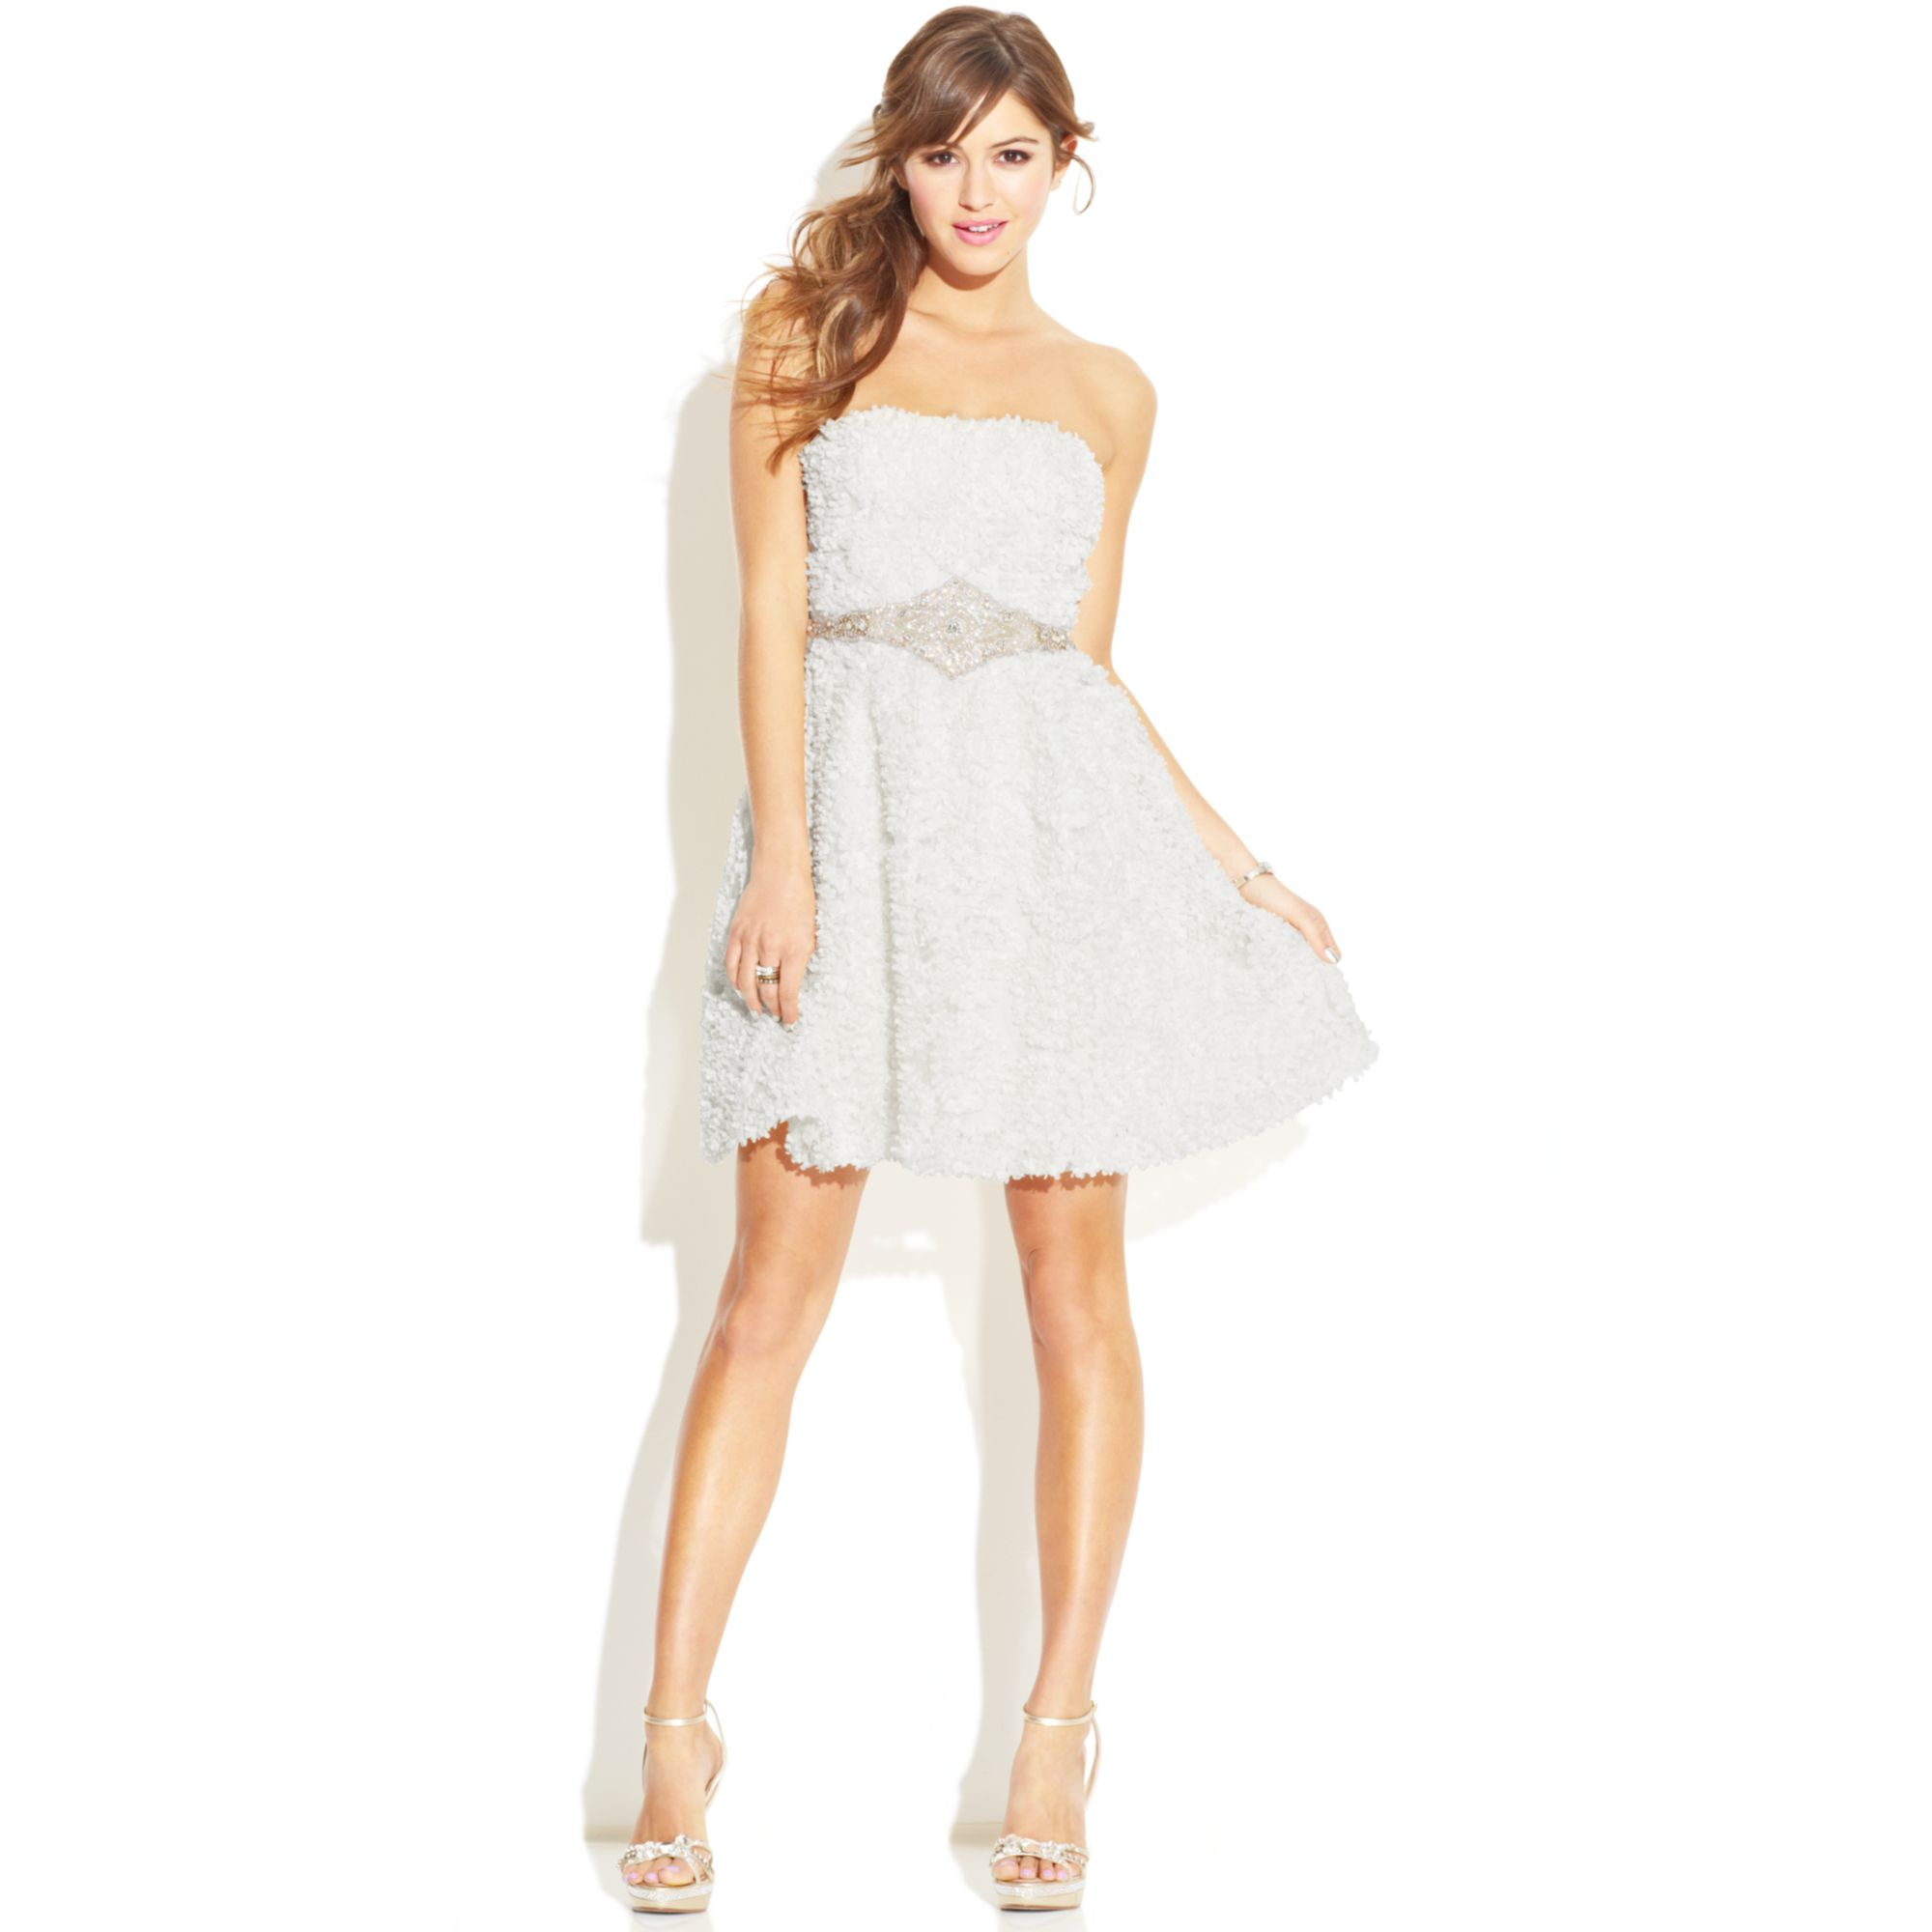 Lyst As U Wish Strapless Textured Dress In White